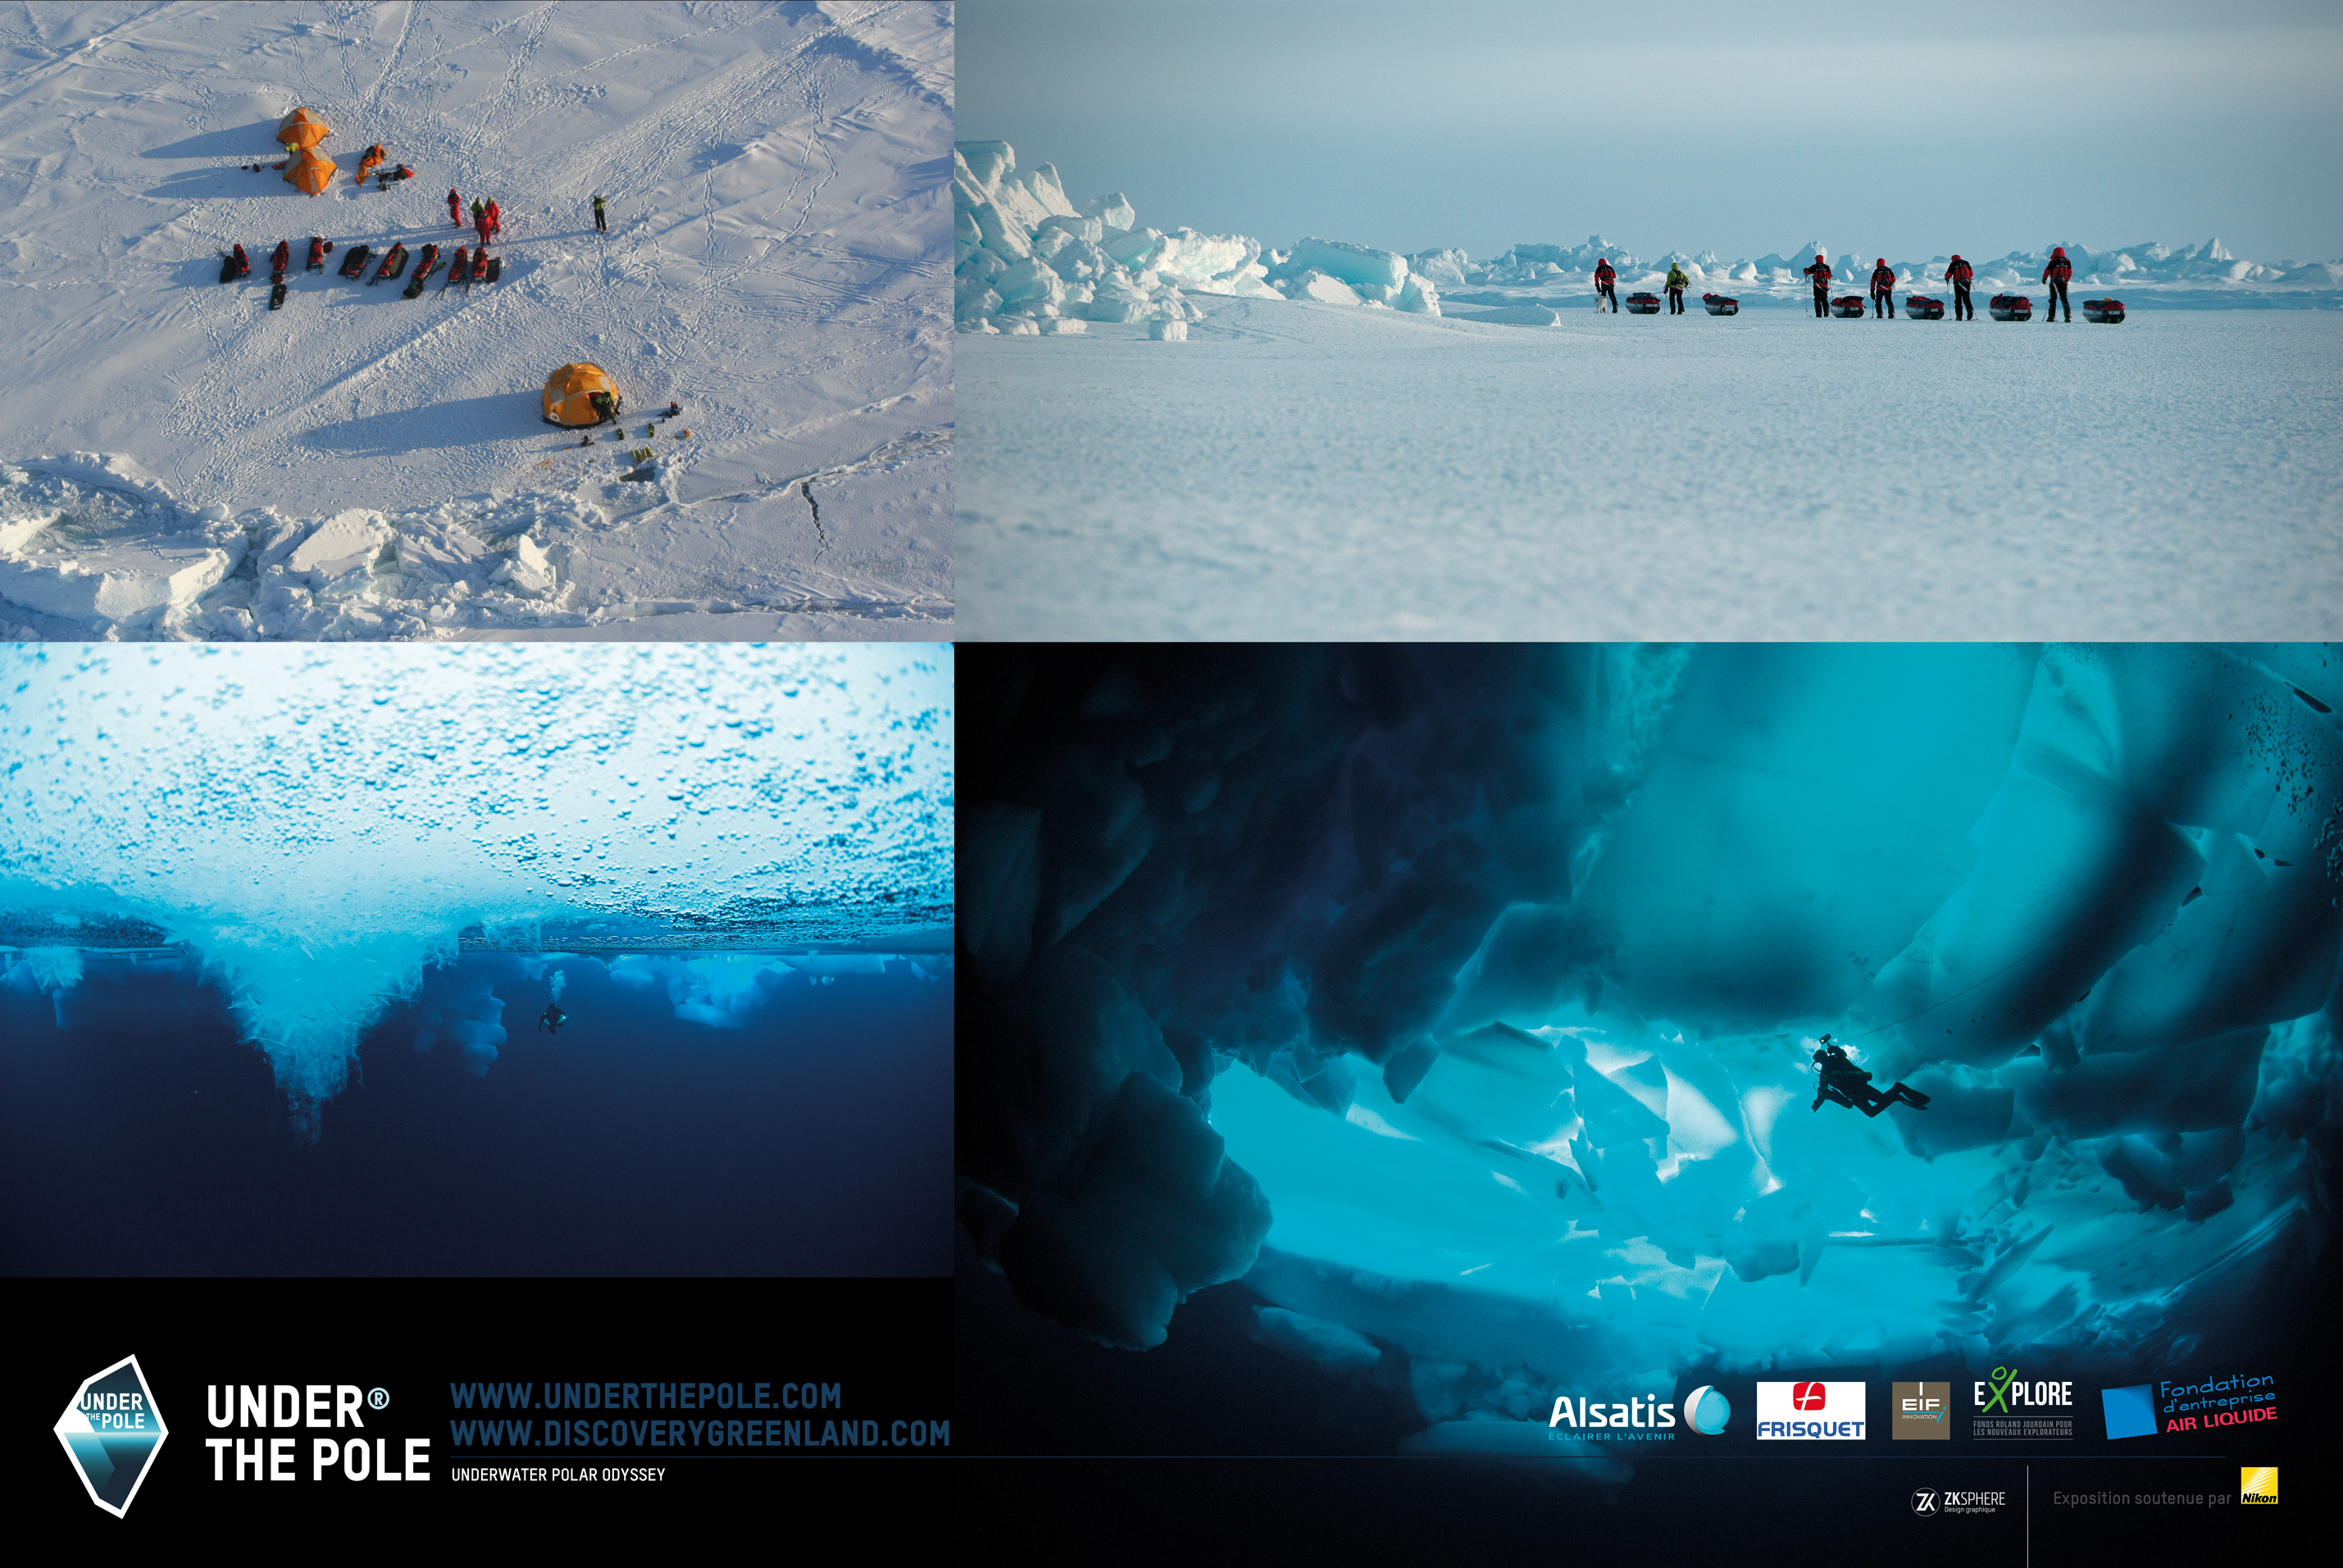 Exposition Under The Pole 2 - Discovery Greenland